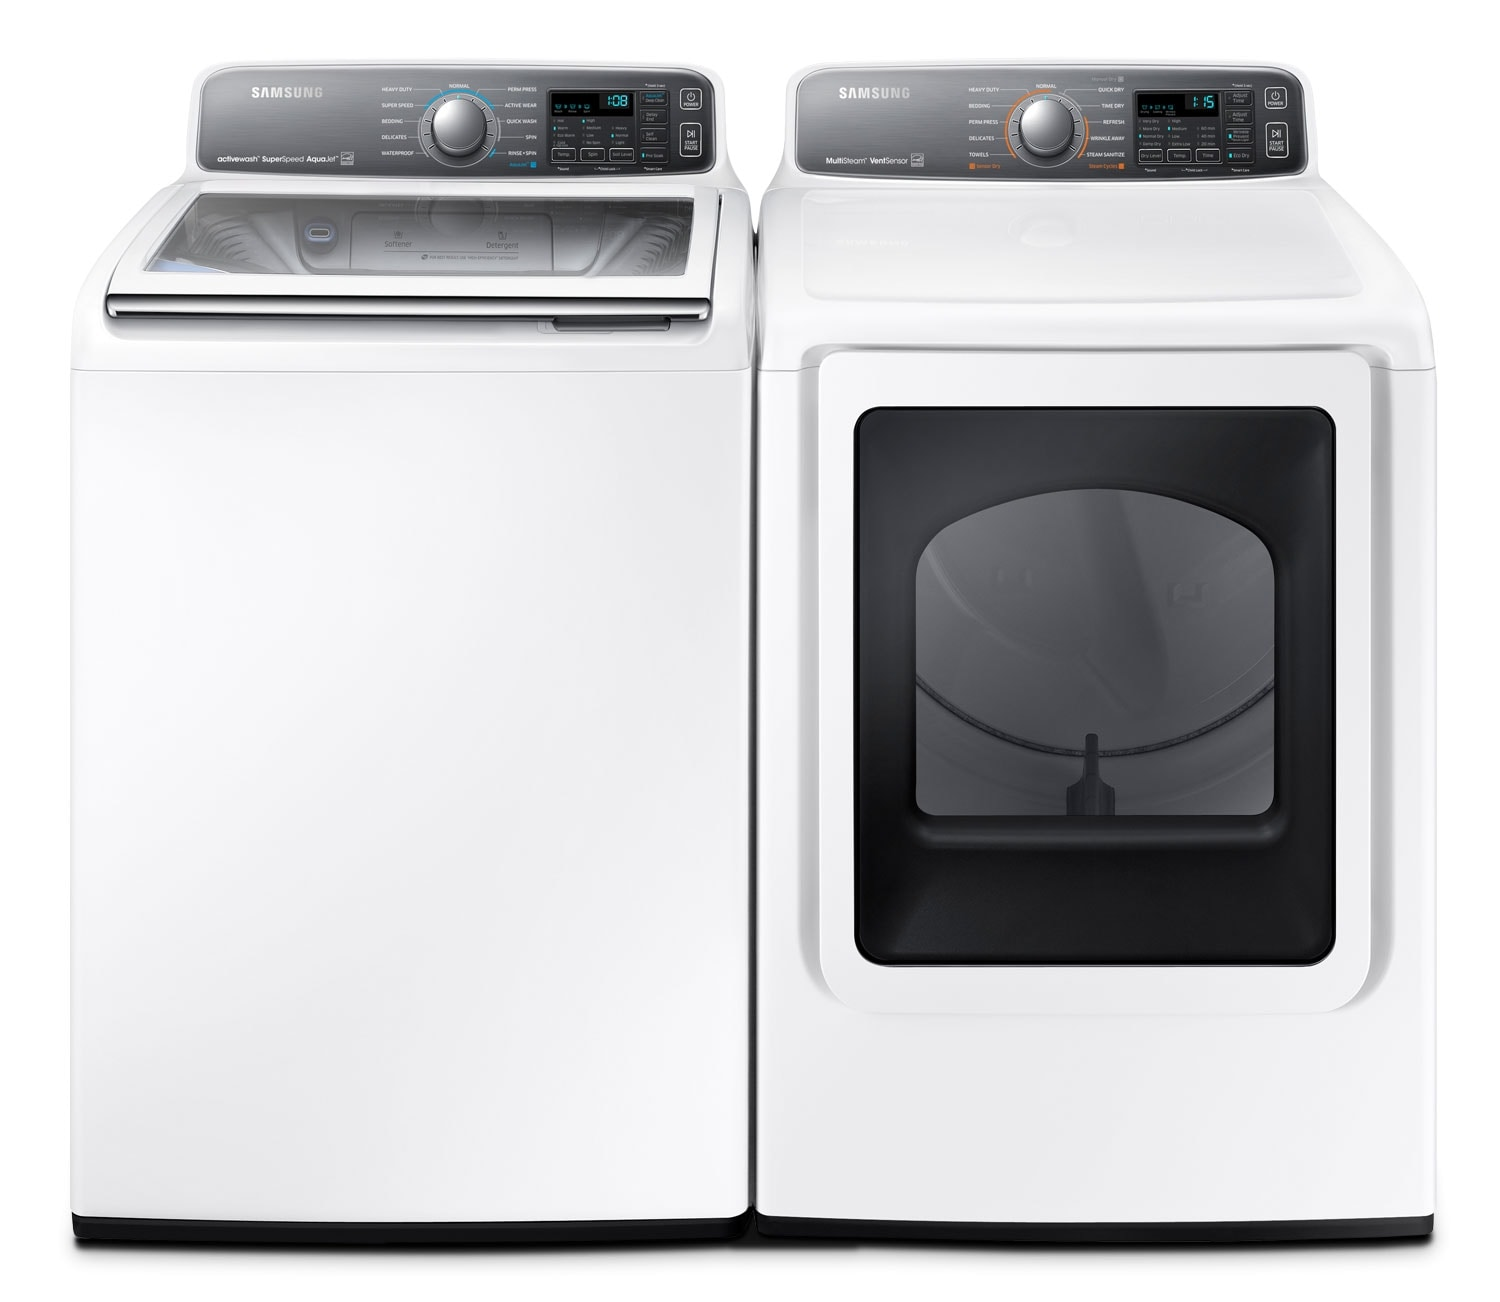 Washers and Dryers - Samsung 5.5 Cu Ft. Top-Load Washer and 7.4 Cu. Ft. Electric Steam Dryer - White